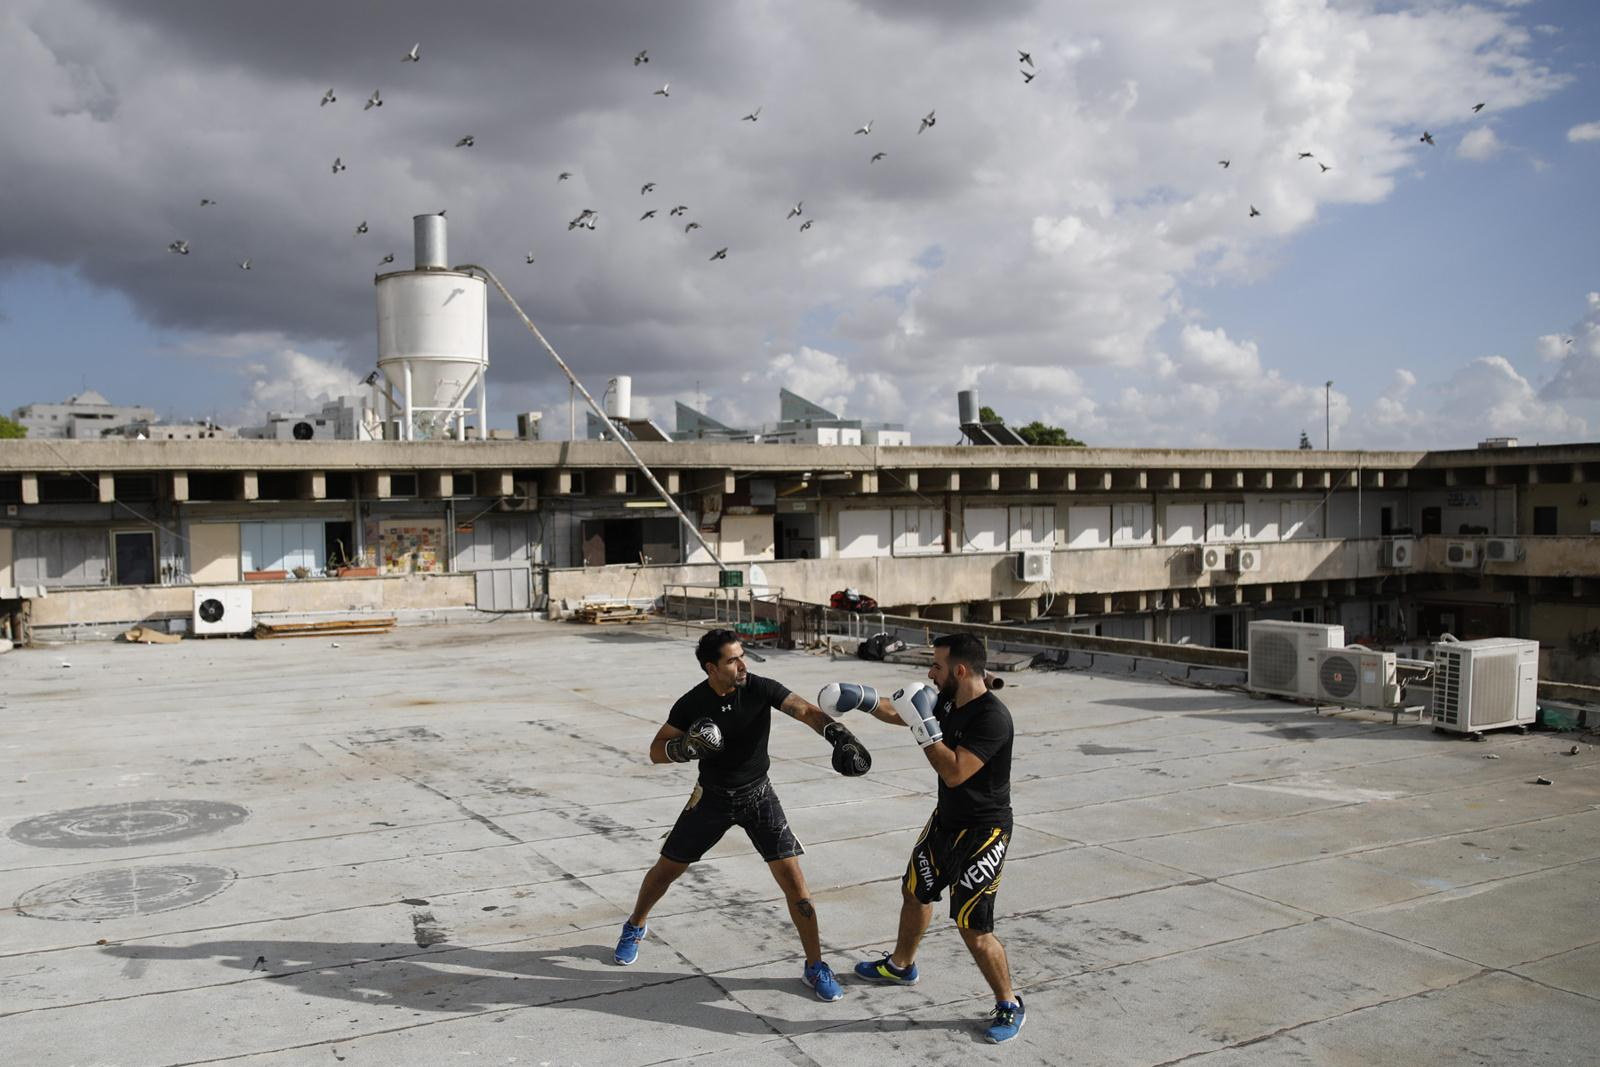 Krav Maga instructors Doron Turgeman (L ), 35, and Michael Alimelech (R ), 26, spar with each other as part of their Krav Maga training, on the rooftop of the building in which they give courses, in the city of Givatayim, just East of Tel Aviv, November 29, 2017, Israel.